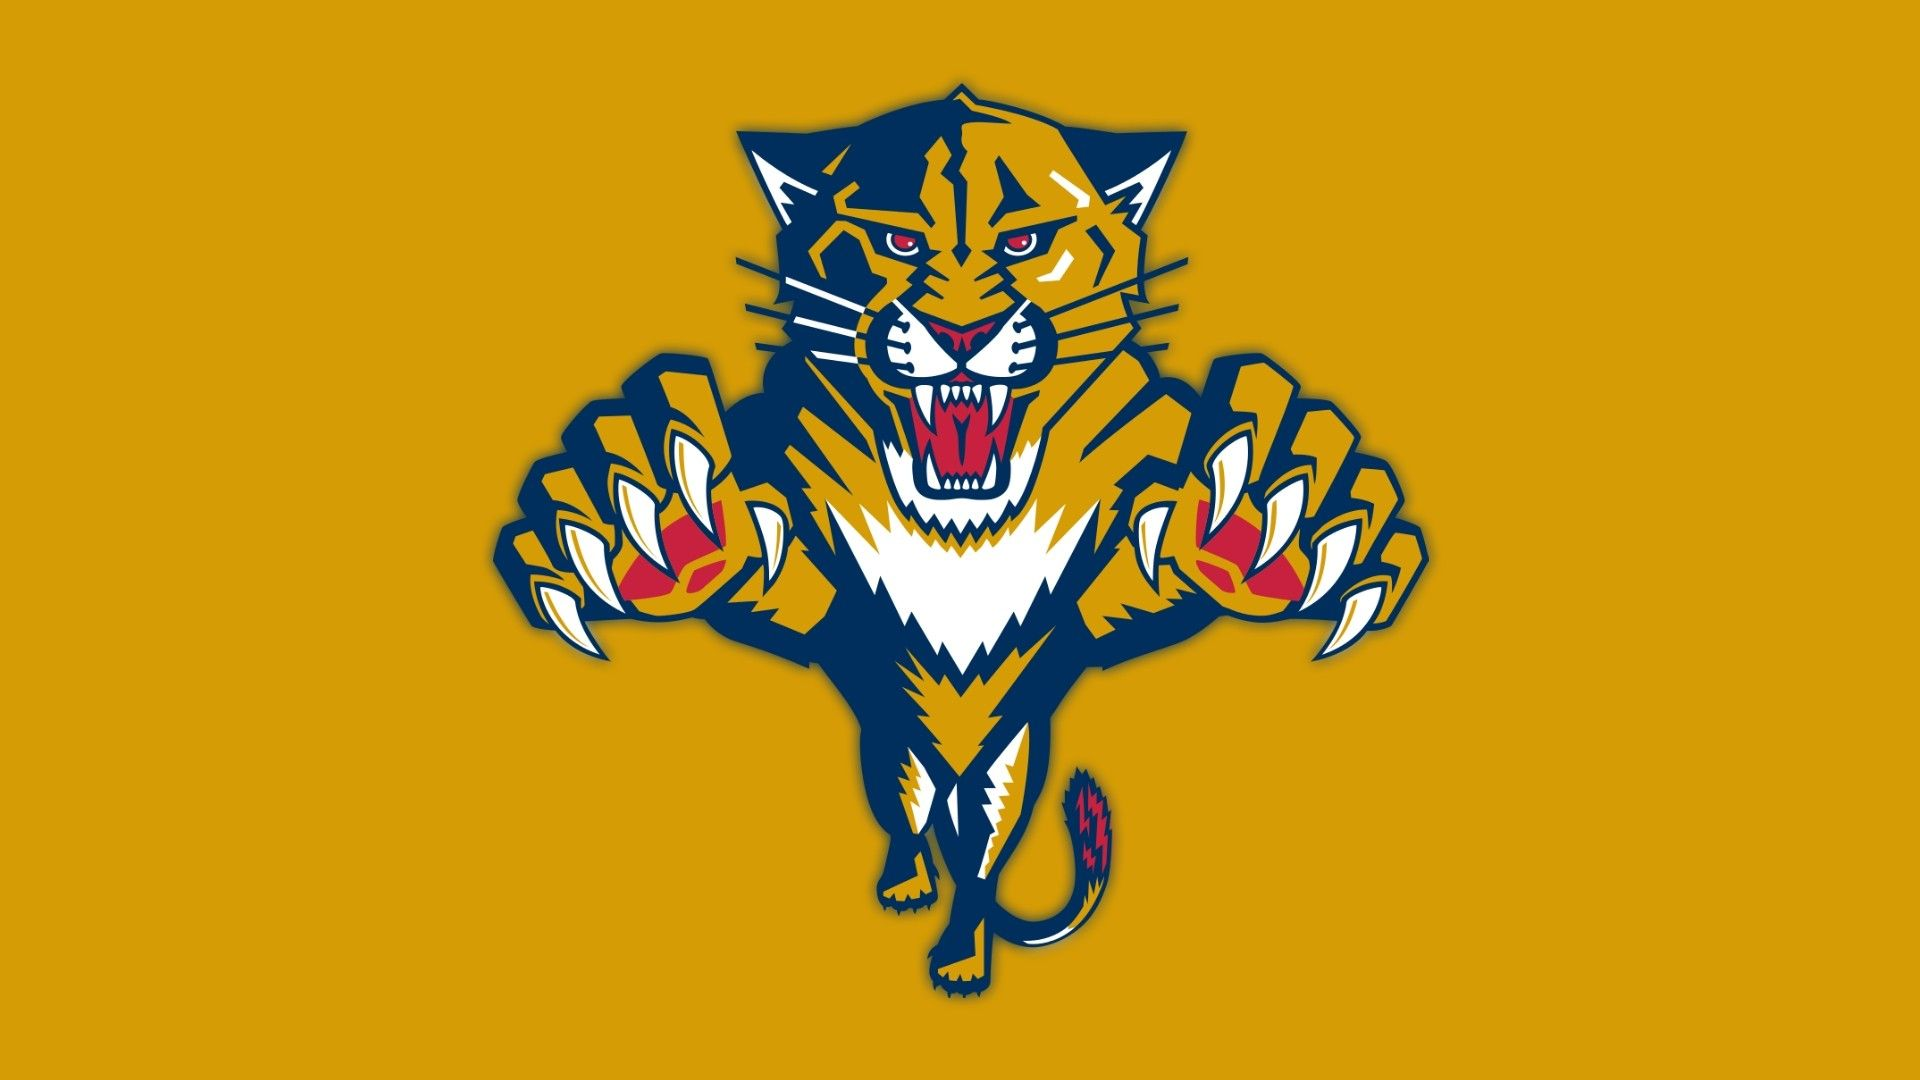 1920x1080 Wallpaper Wiki Florida Panthers Wallpapers HD Download Free PIC ...